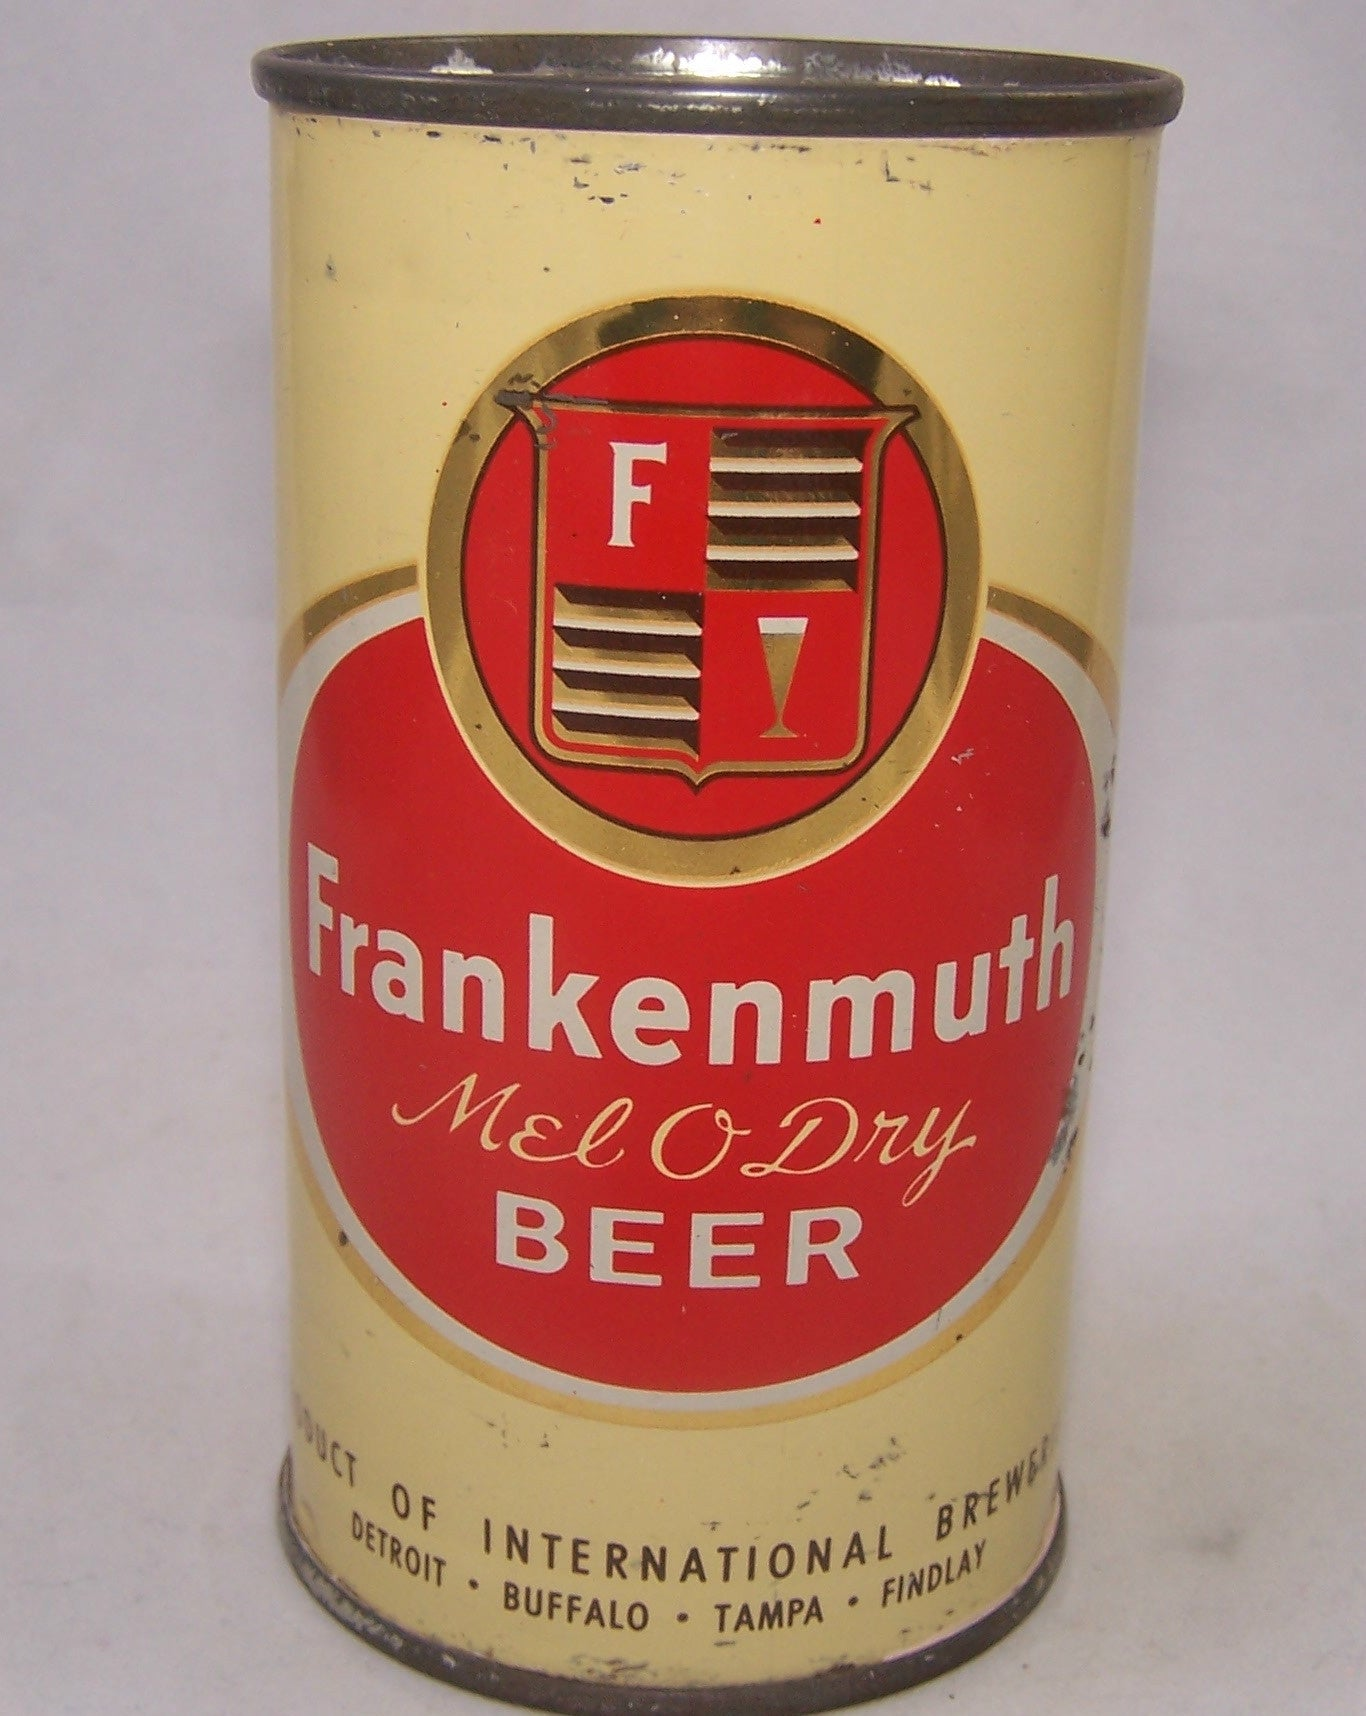 Frankenmuth Mel O Dry Beer, USBC 67-04, Grade 1- Sold on 07/27/18